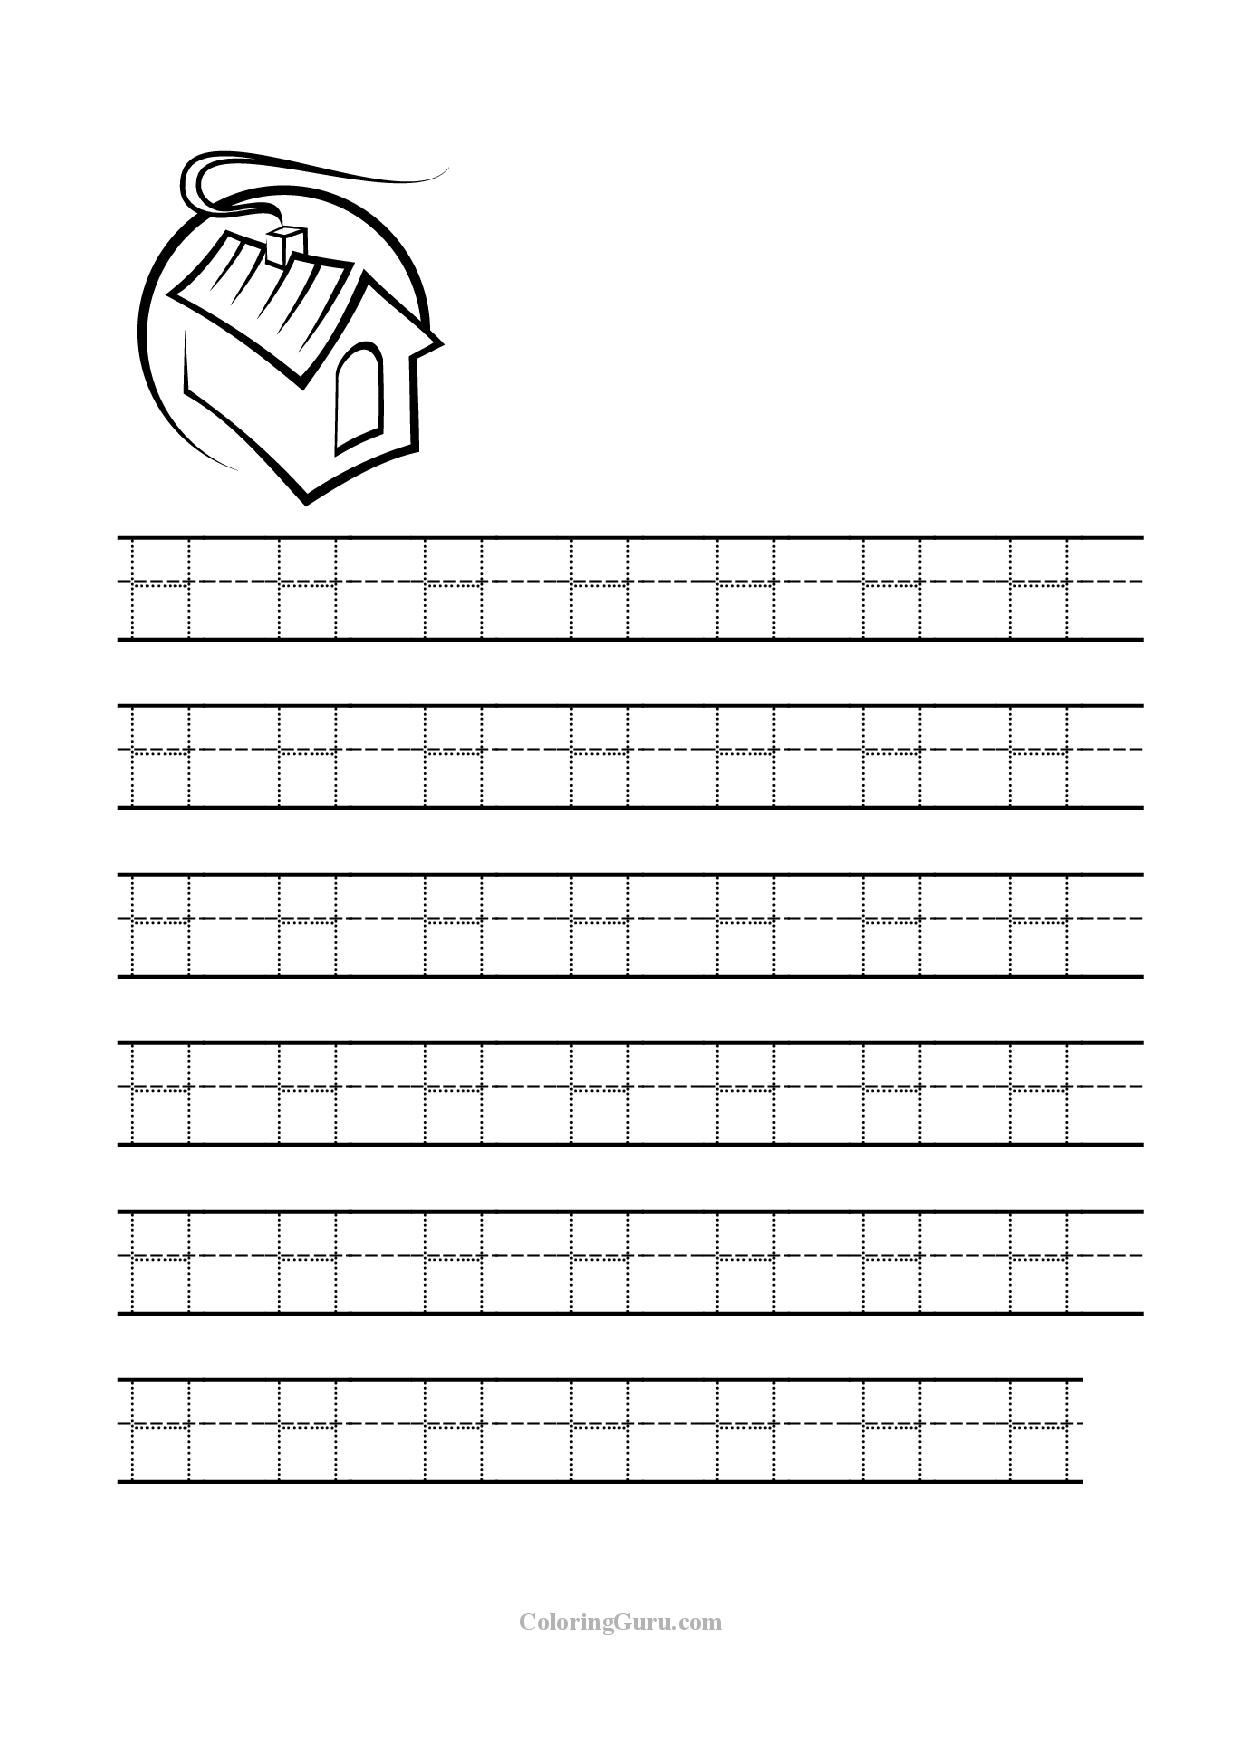 Letter H Worksheets for Preschool Free Printable Tracing Letter H Worksheets for Preschool